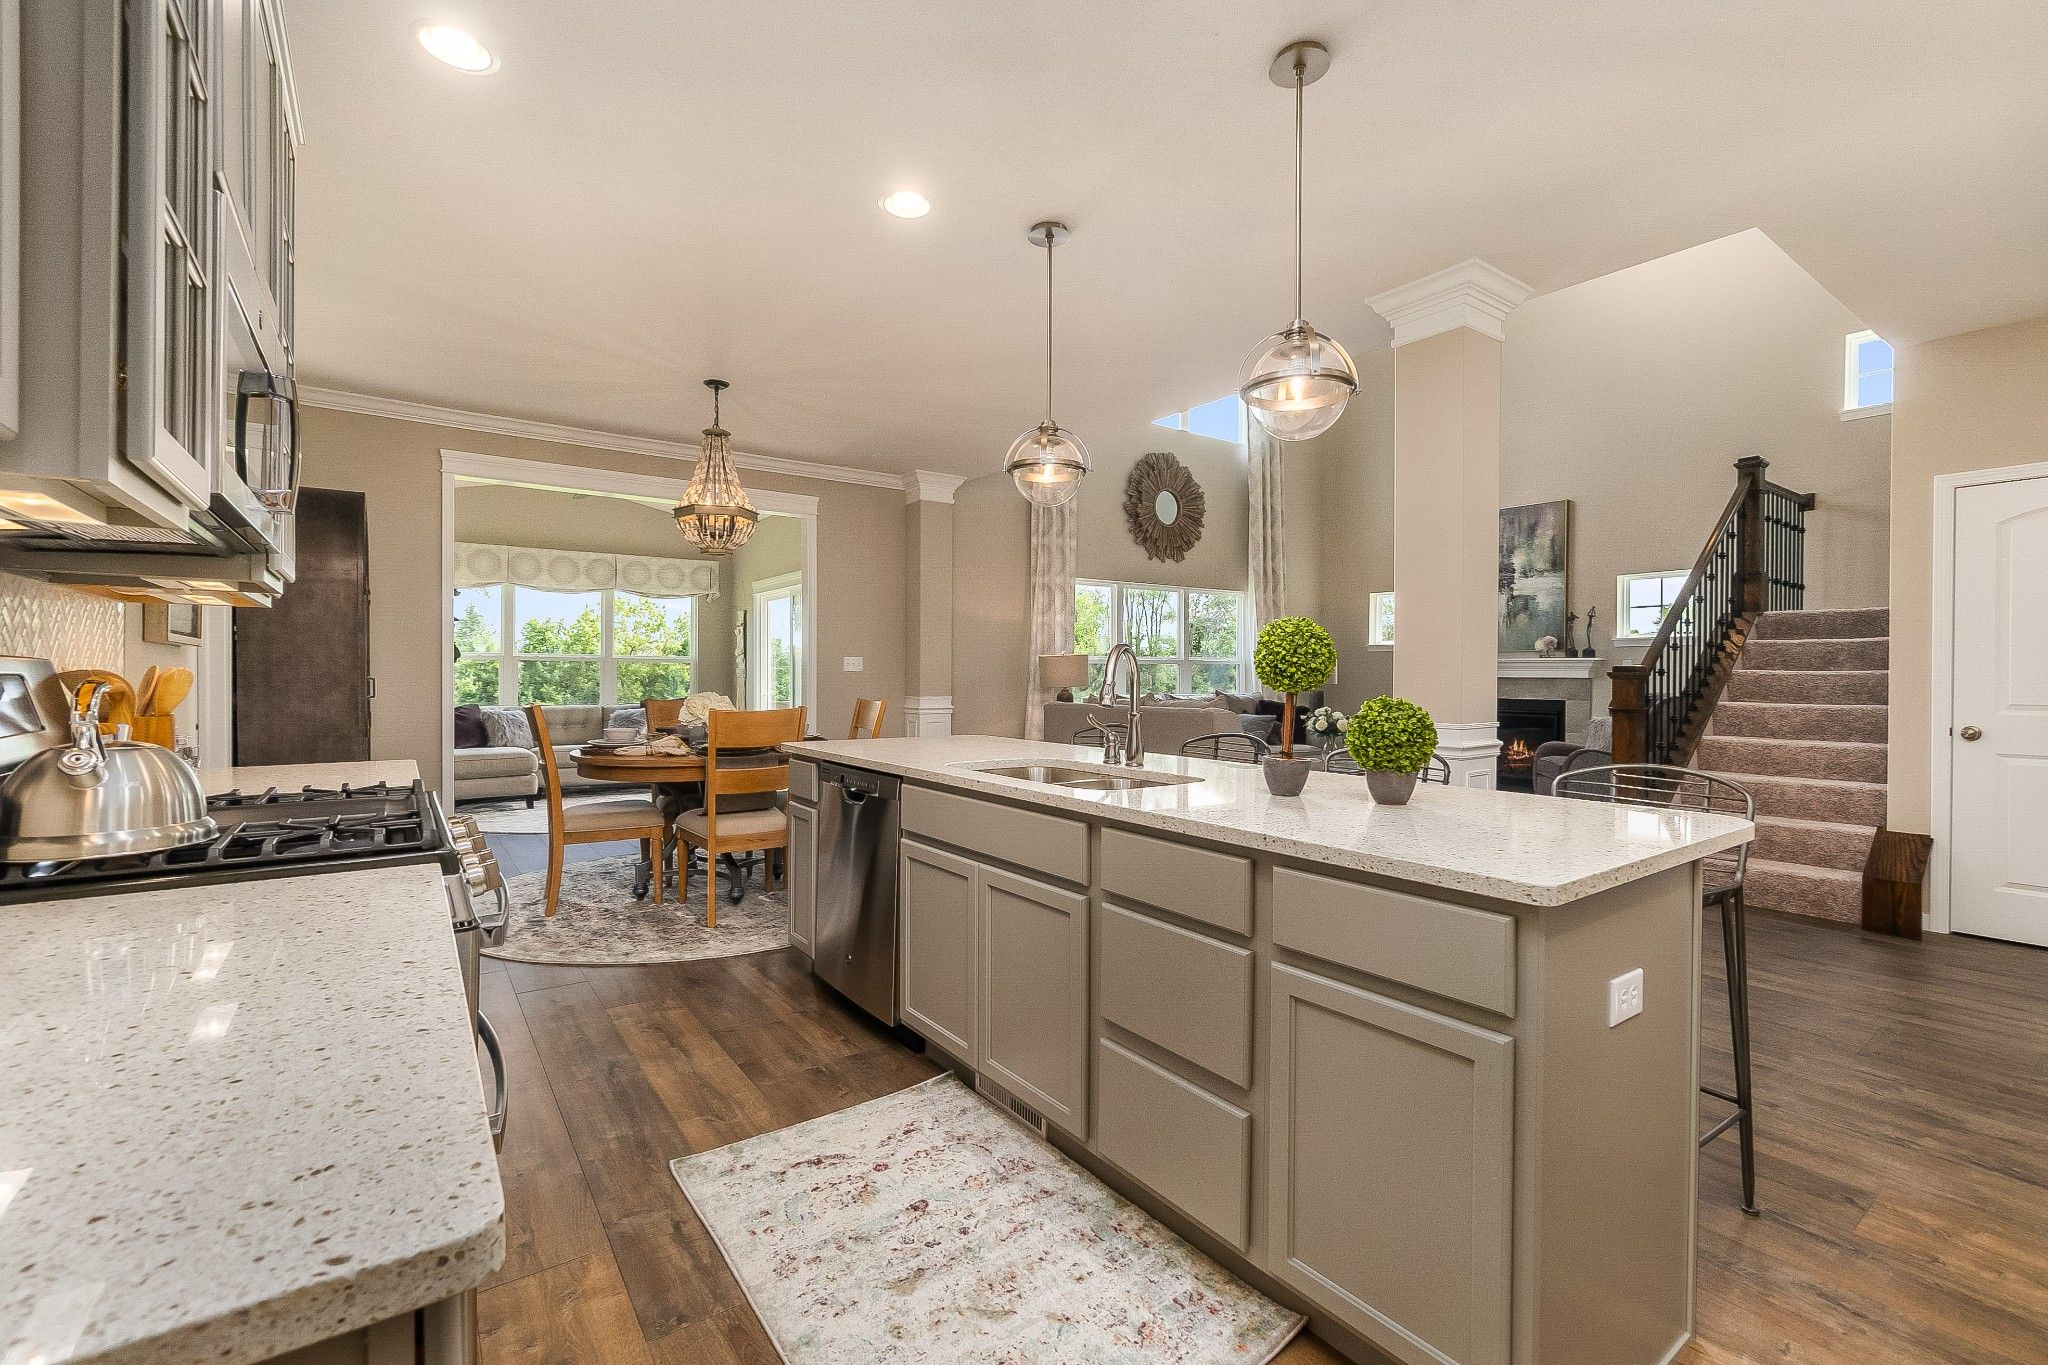 Kitchen featured in the Sedona By Olthof Homes in Indianapolis, IN